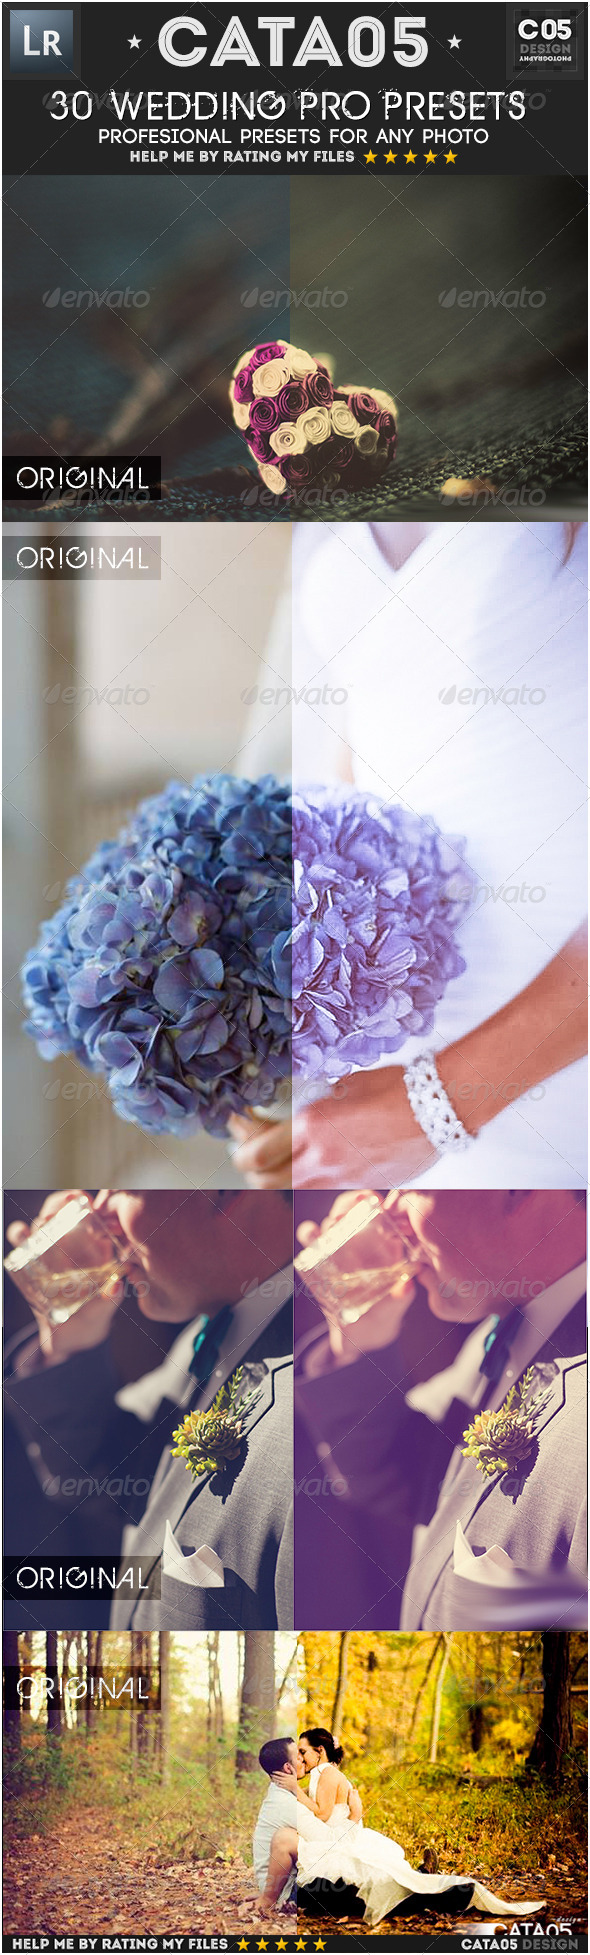 GraphicRiver 30 Wedding Pro Presets 7311064